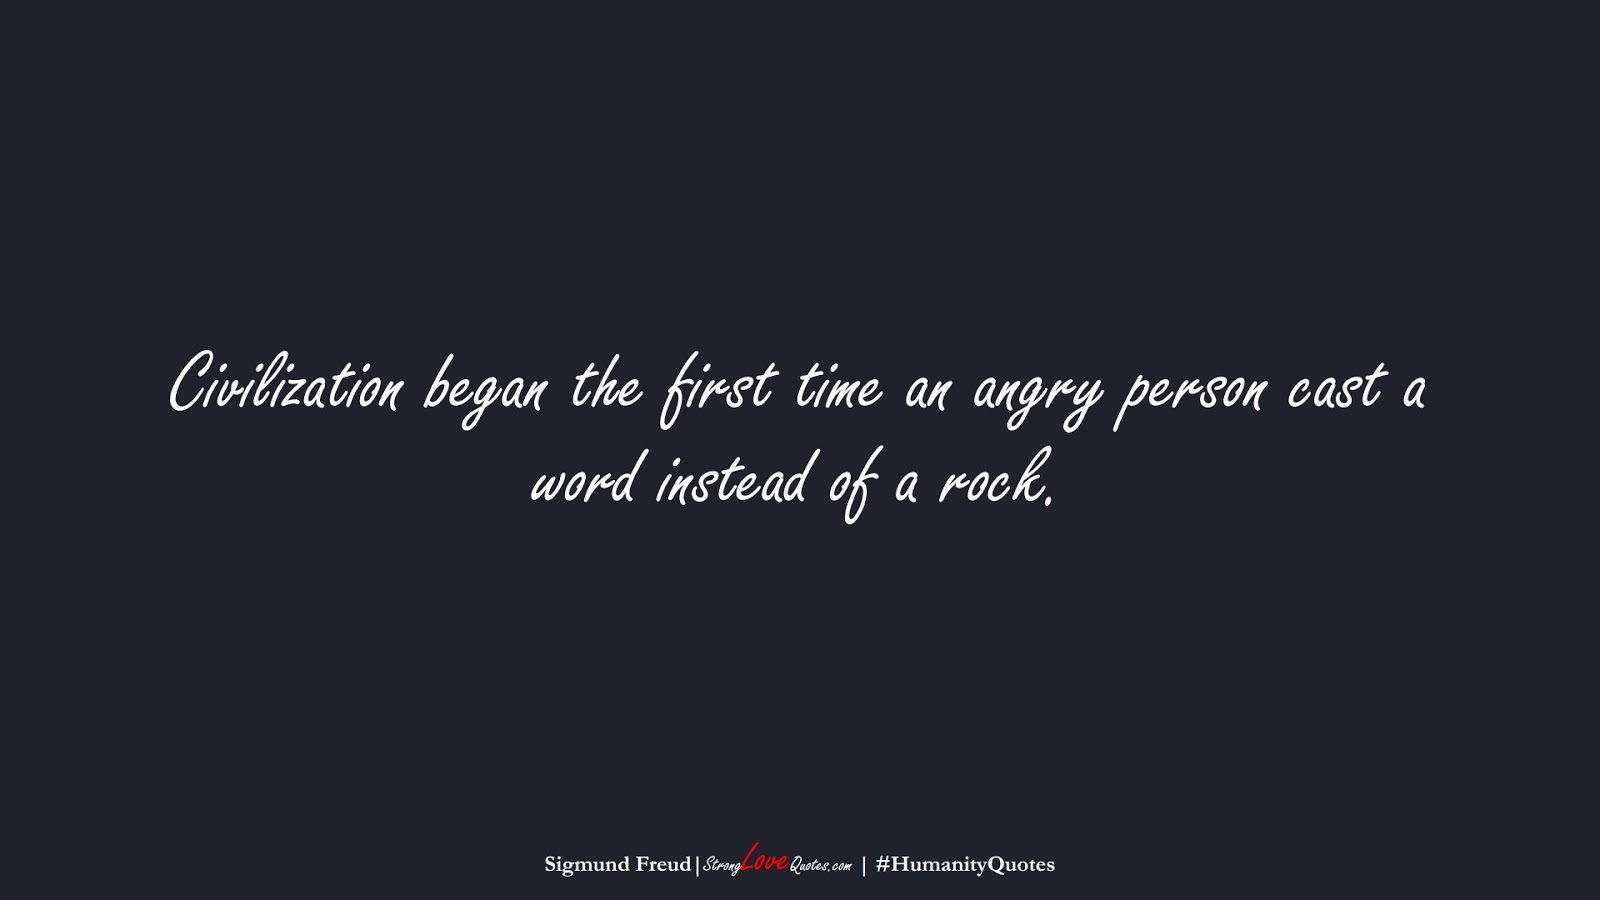 Civilization began the first time an angry person cast a word instead of a rock. (Sigmund Freud);  #HumanityQuotes